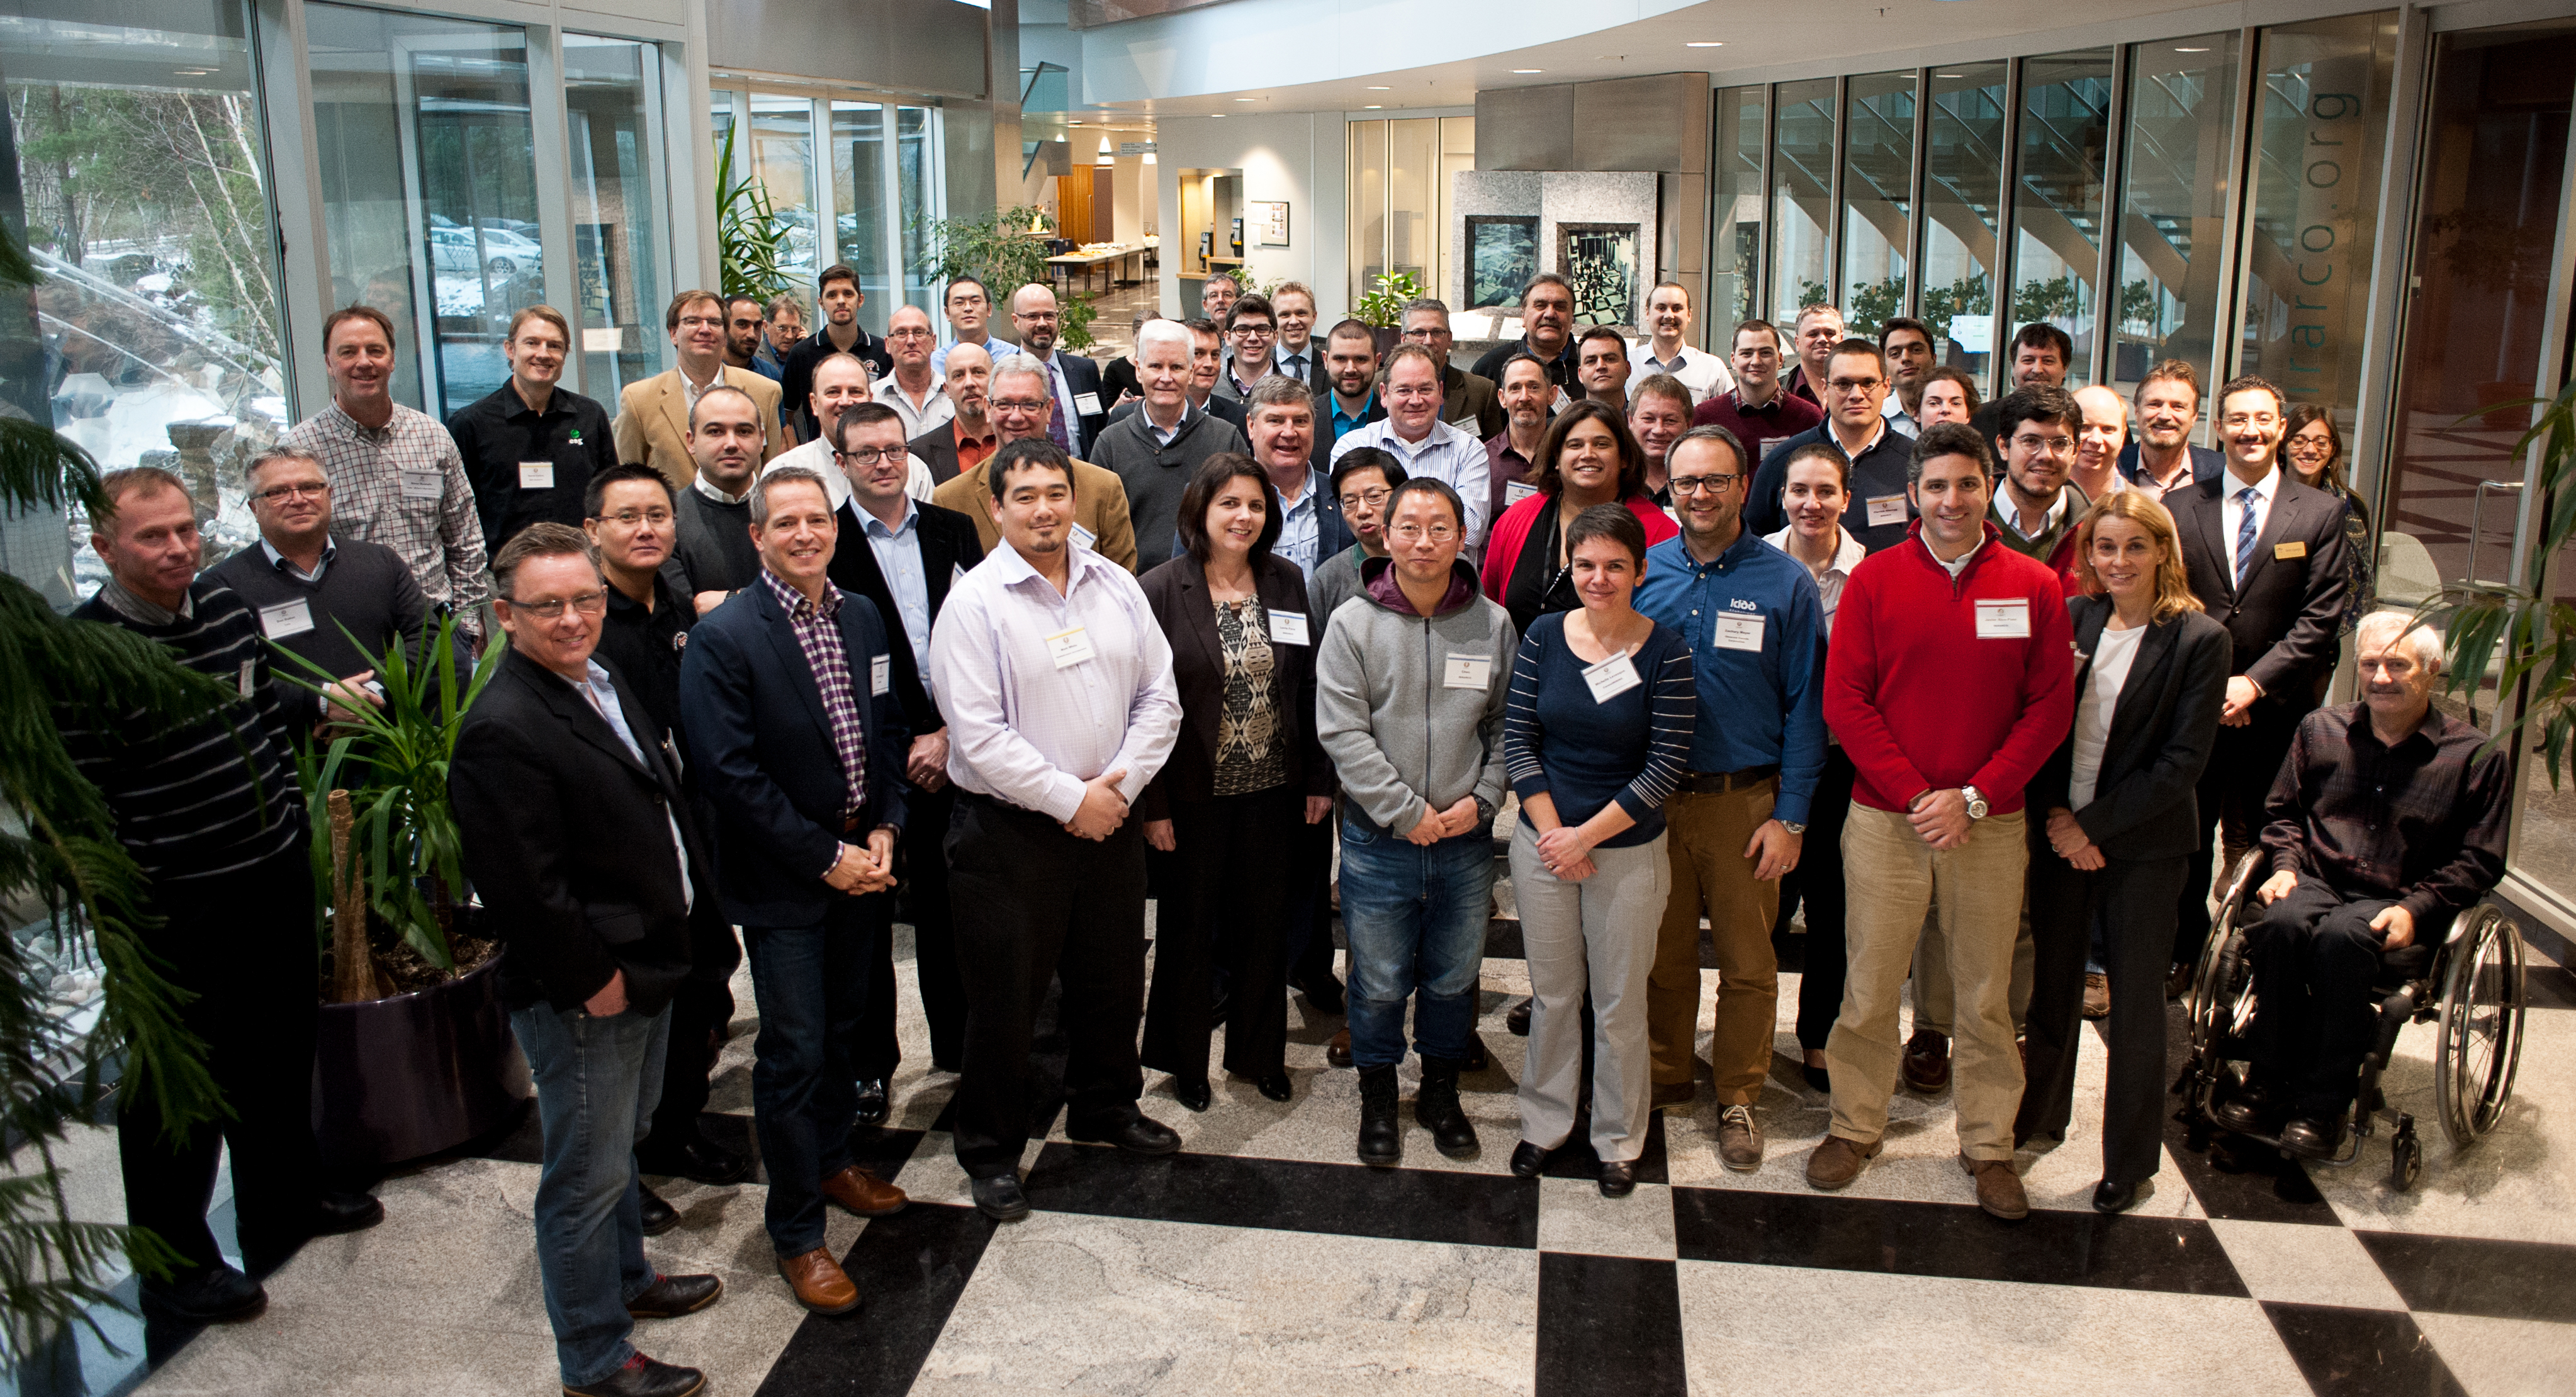 UDMN gains momentum: Hosts 1st Annual Symposium and launches new Industry focused Call for Proposals